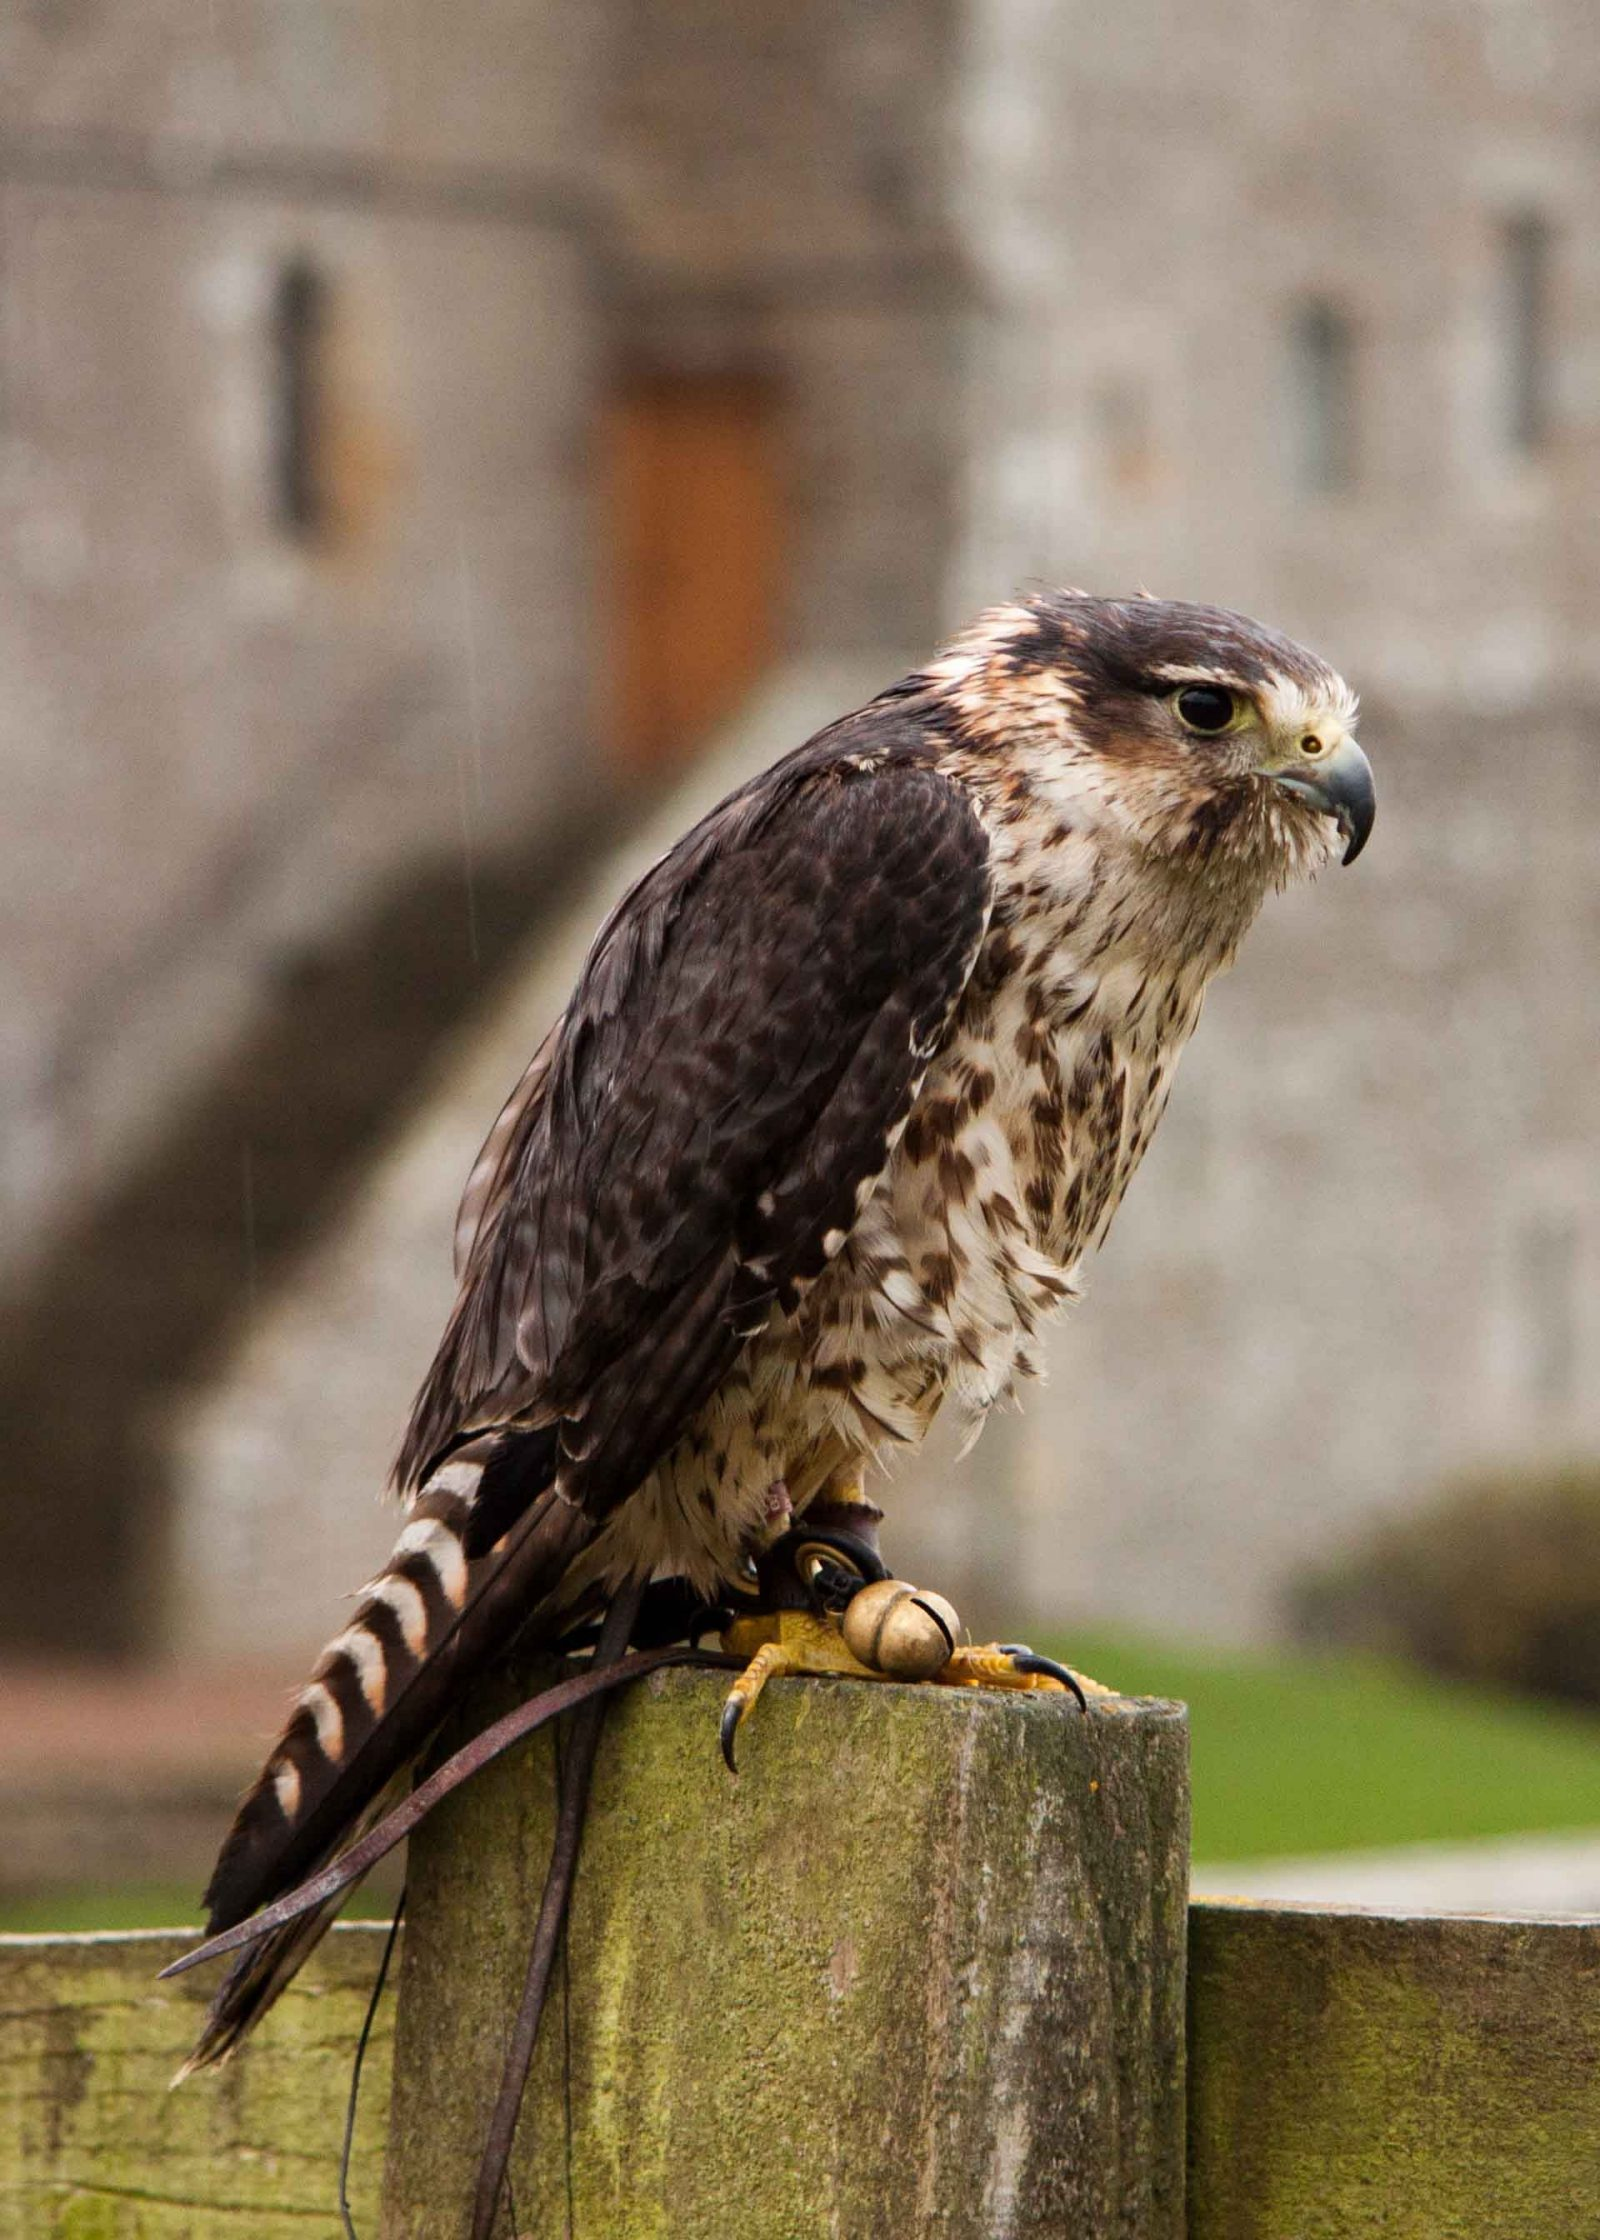 Take Better Portraits of Animals - Birds of Prey on Falcondale Life Blog. Practical tips and judging a photograph. How to find animals to photograph. Peregrine-merlin crossbreed.